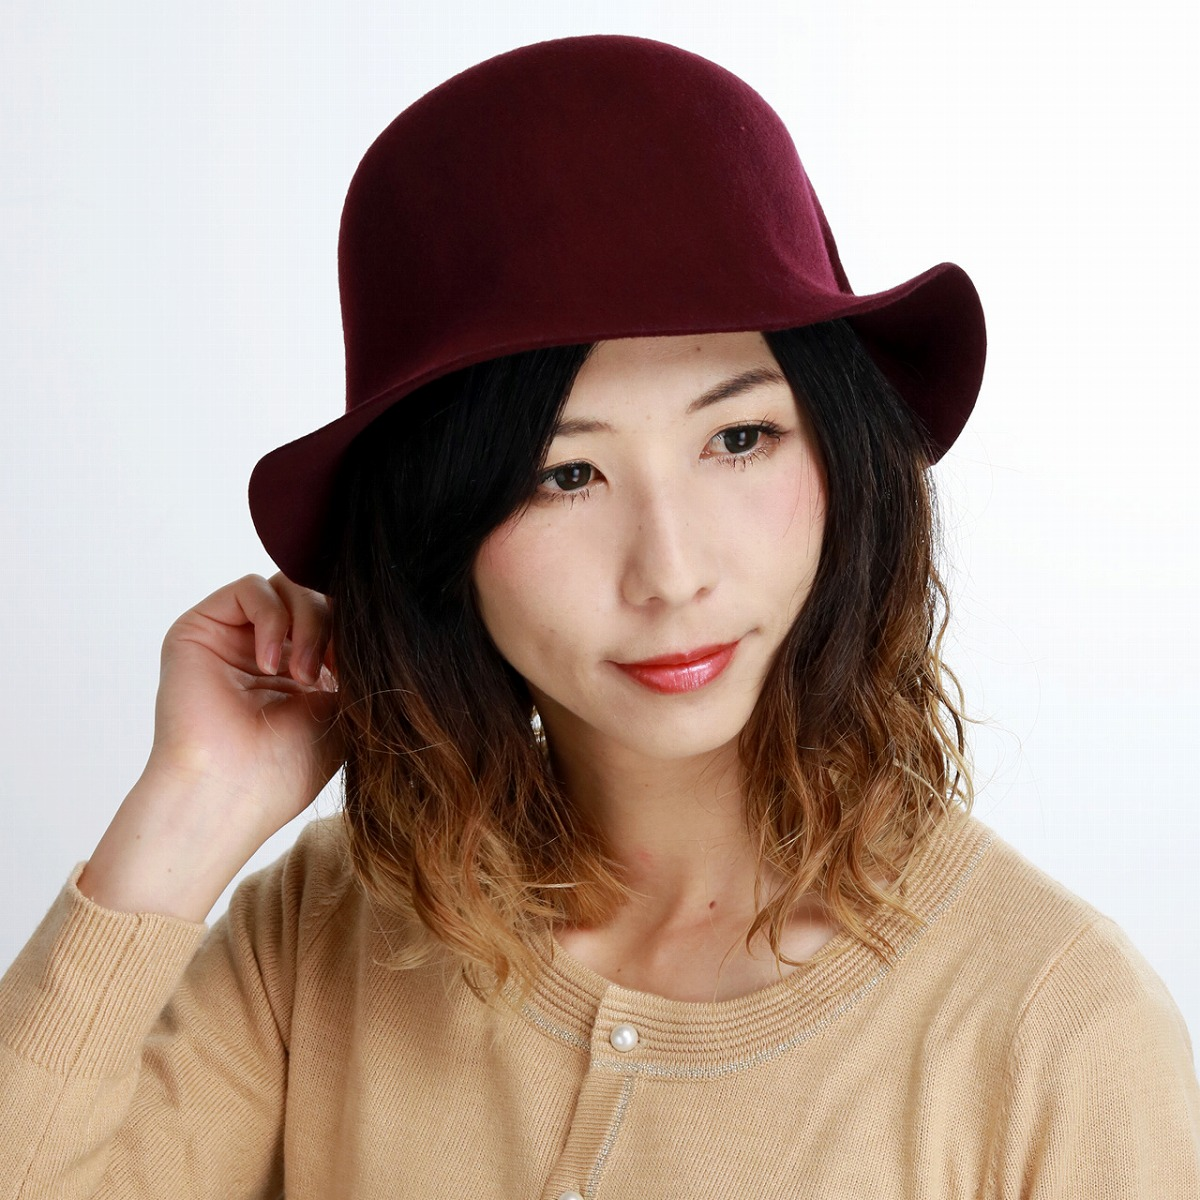 plain fabric shin pull woman rumi woo seth hat elegant of superior grade felt hat tulip 57cm crimson hat woman christmas present gift made